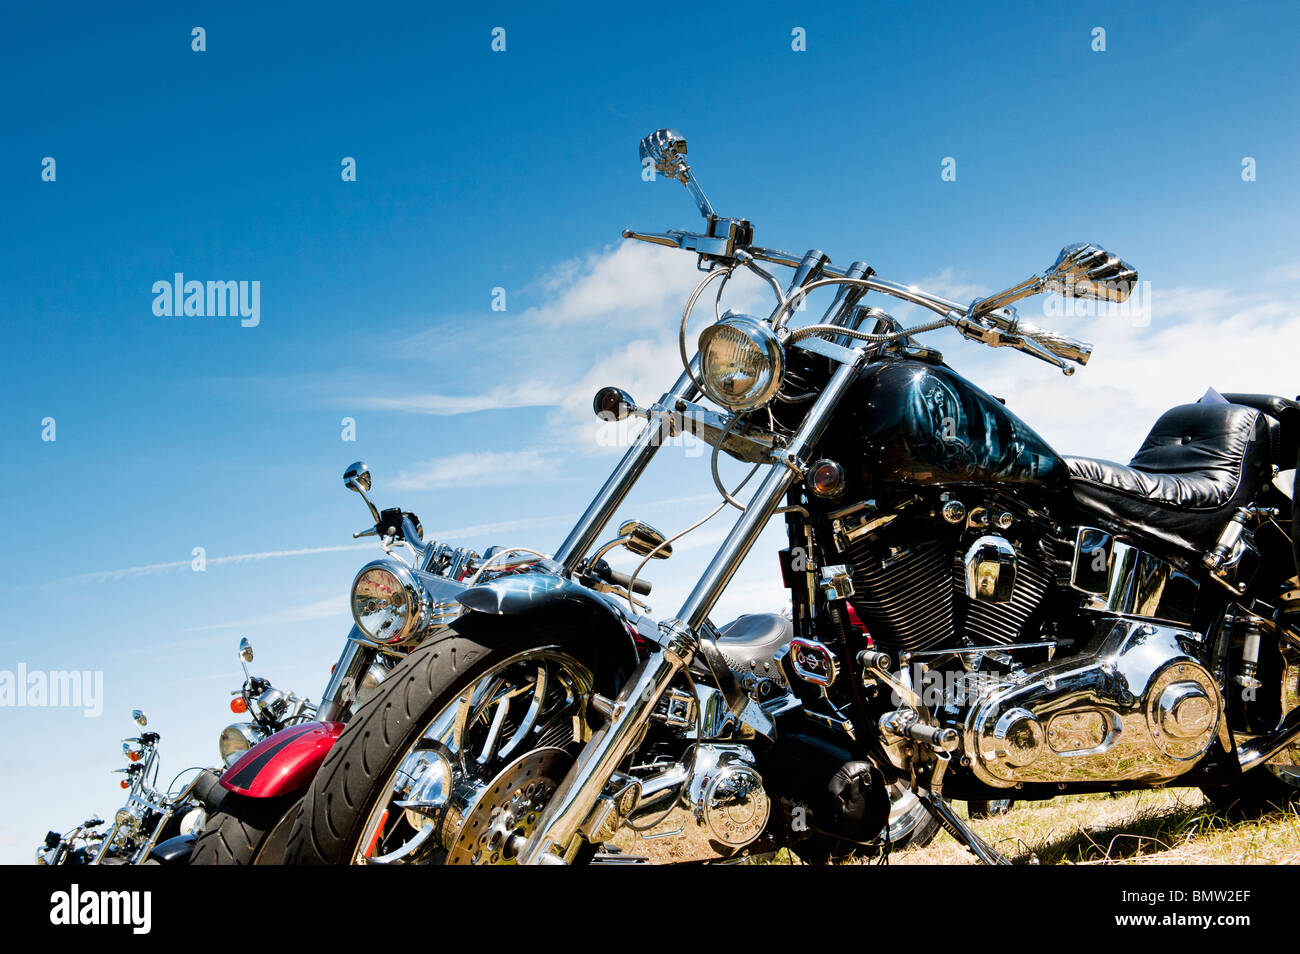 Custom Harley Davidson motorcycle at a bike show in England - Stock Image